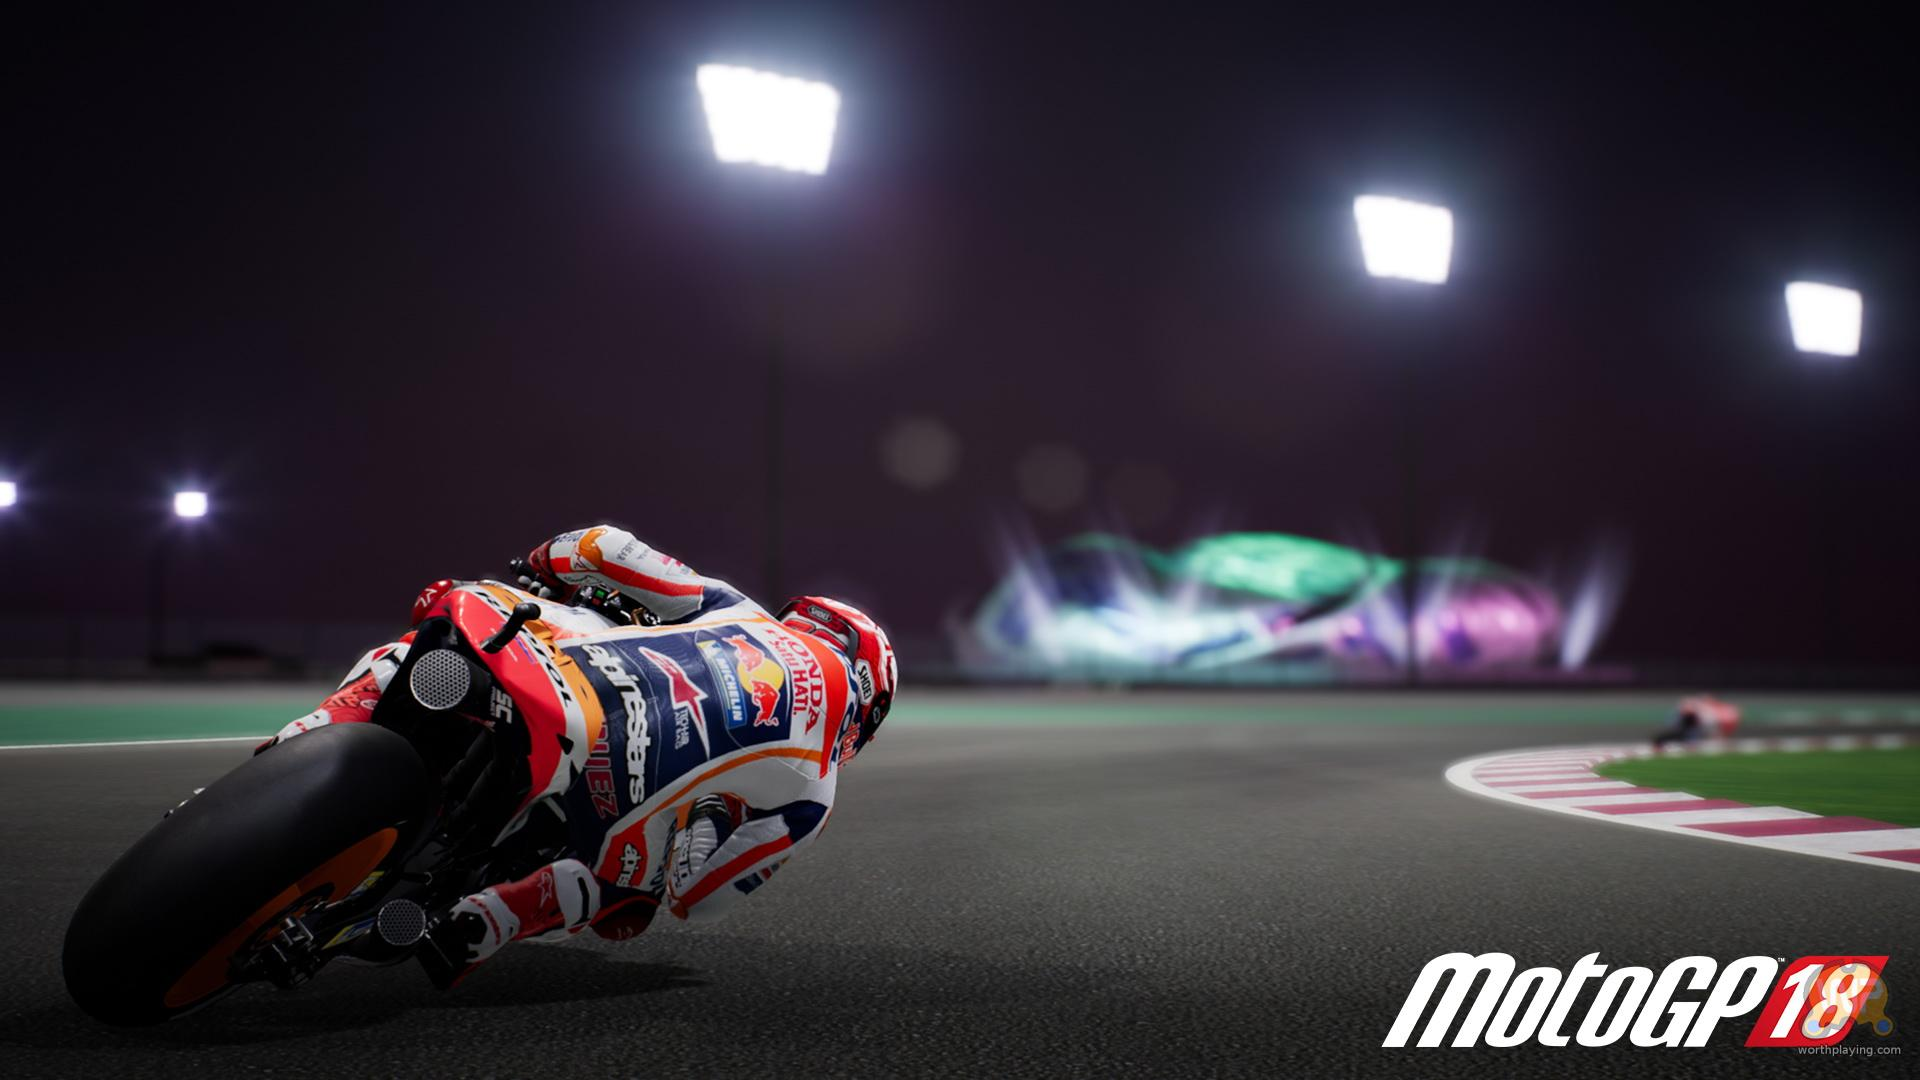 MotoGP 18 Has New Screenshots And Features Trailer To Show Off « Video Game News, Reviews ...